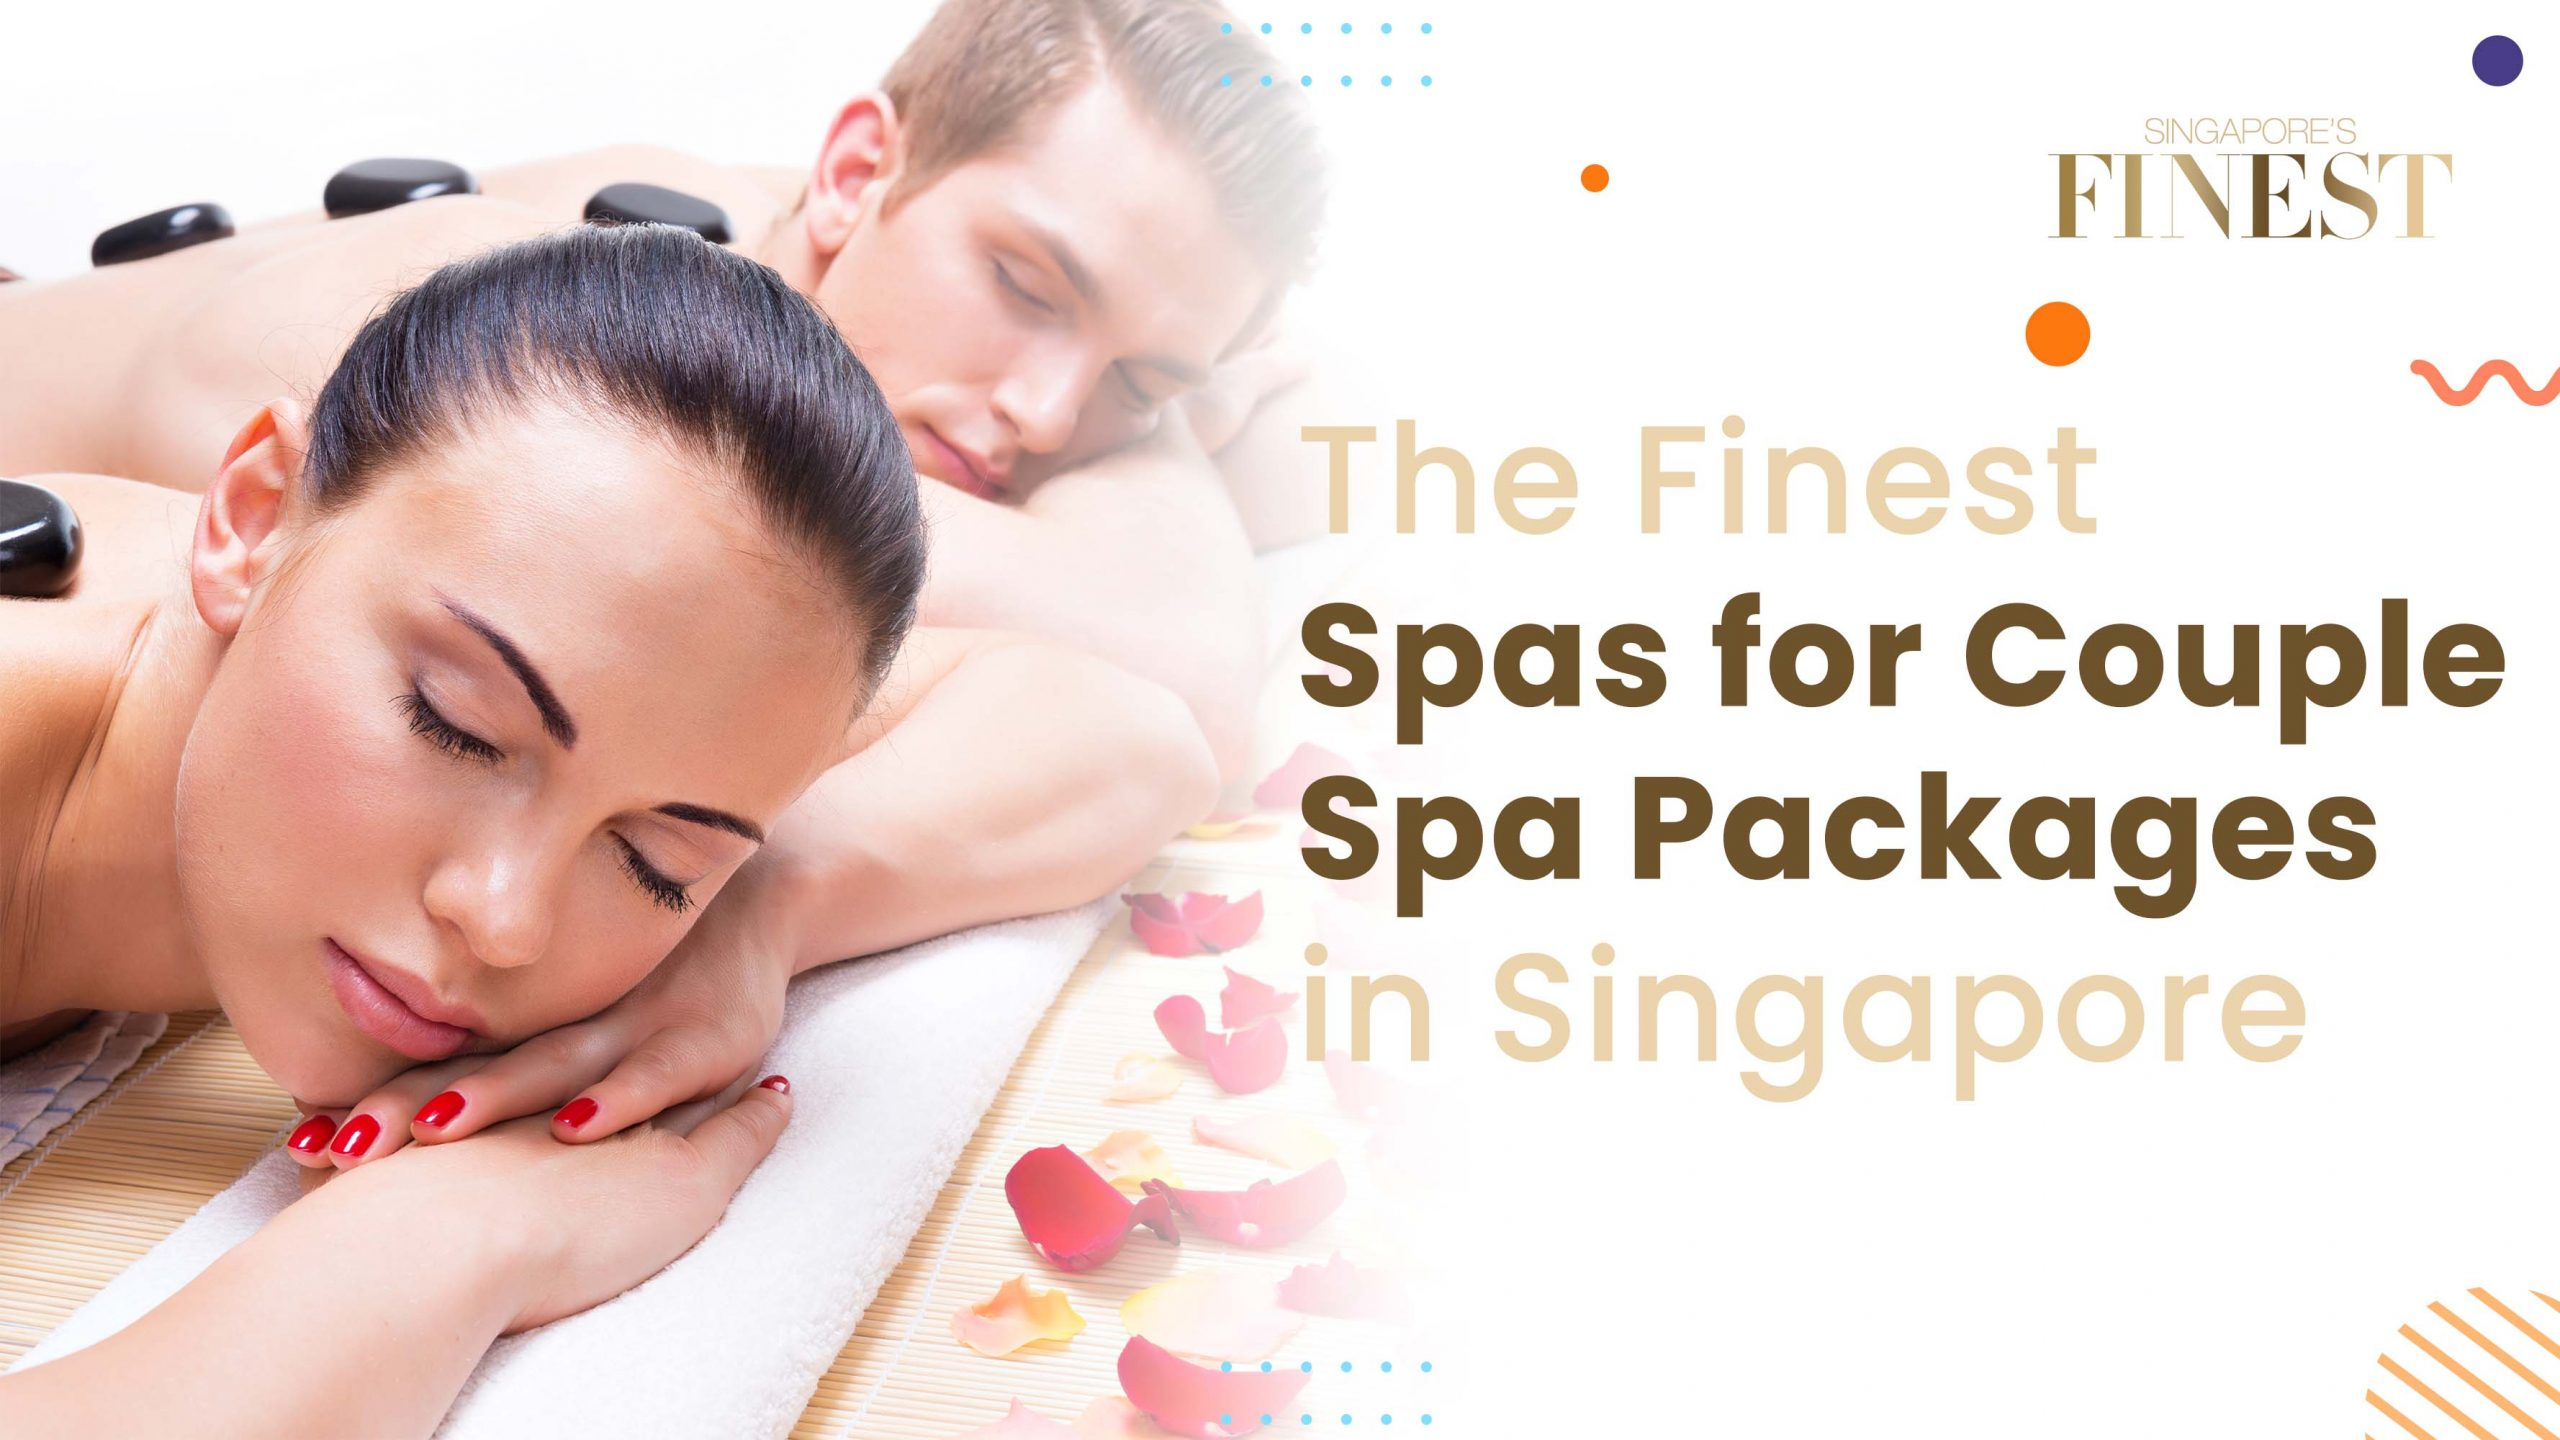 Finest Spas for Couple Spa Packages in Singapore